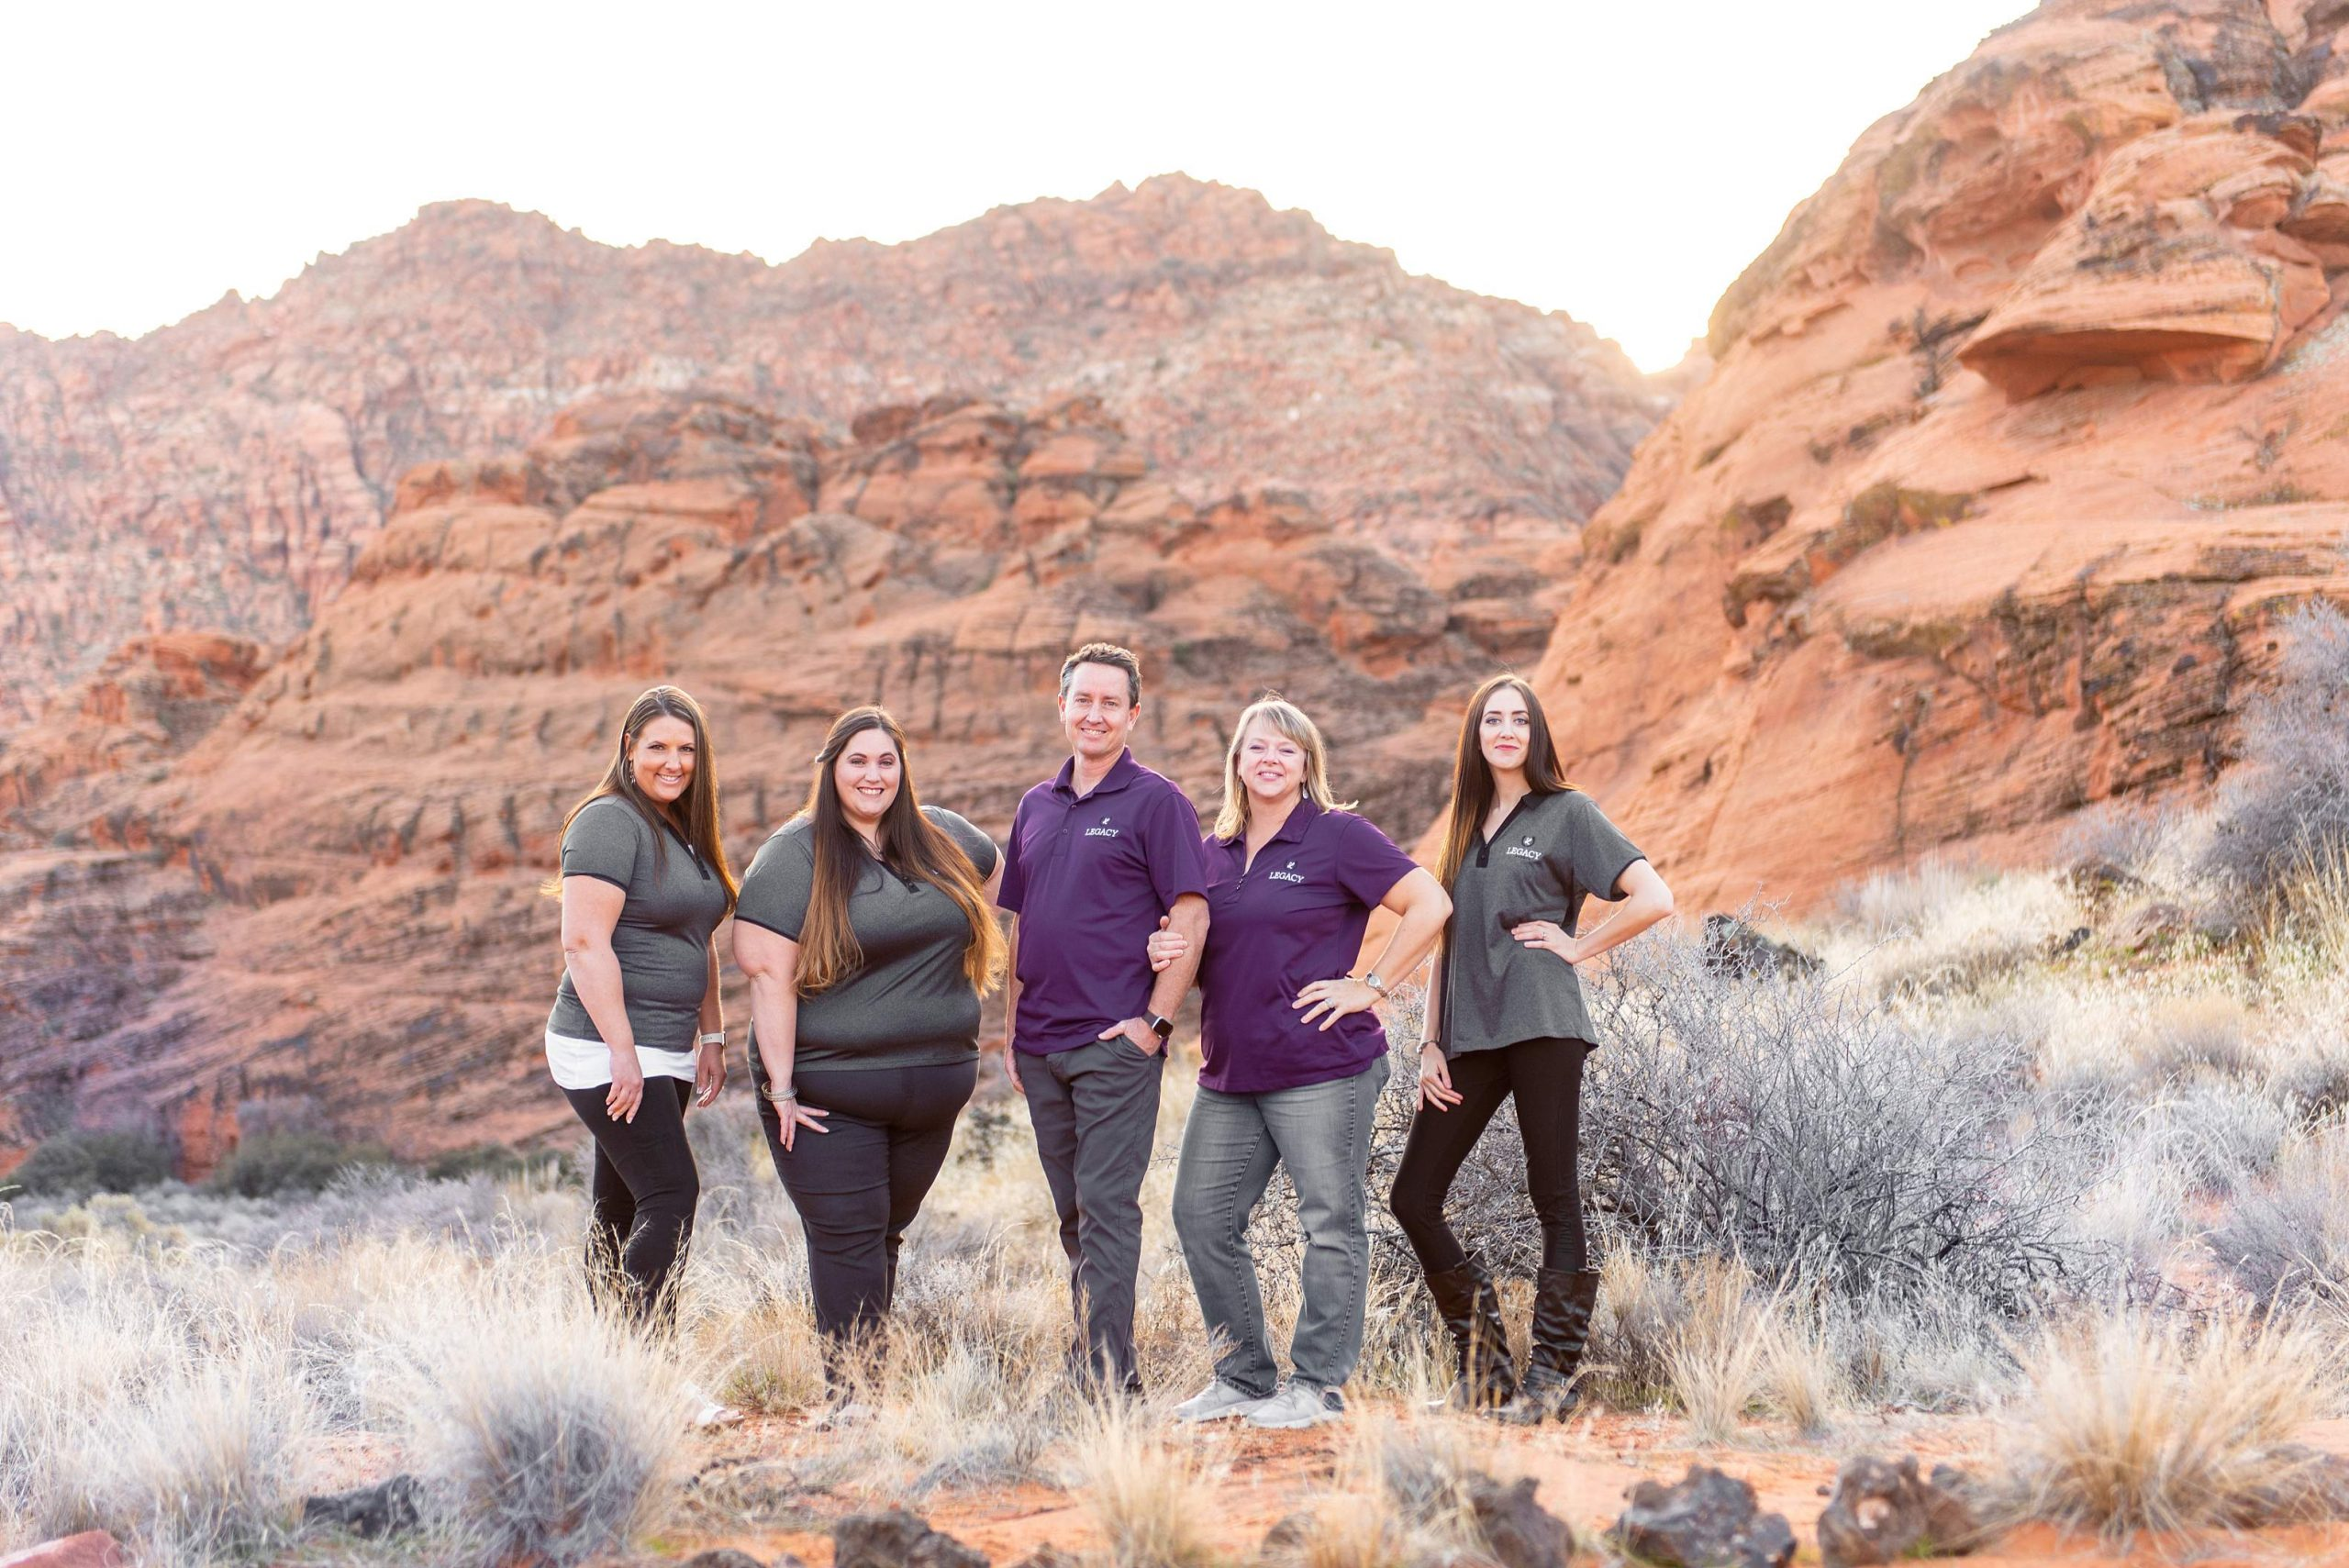 st george utah zion national park wedding planners in southern utah rentals and events